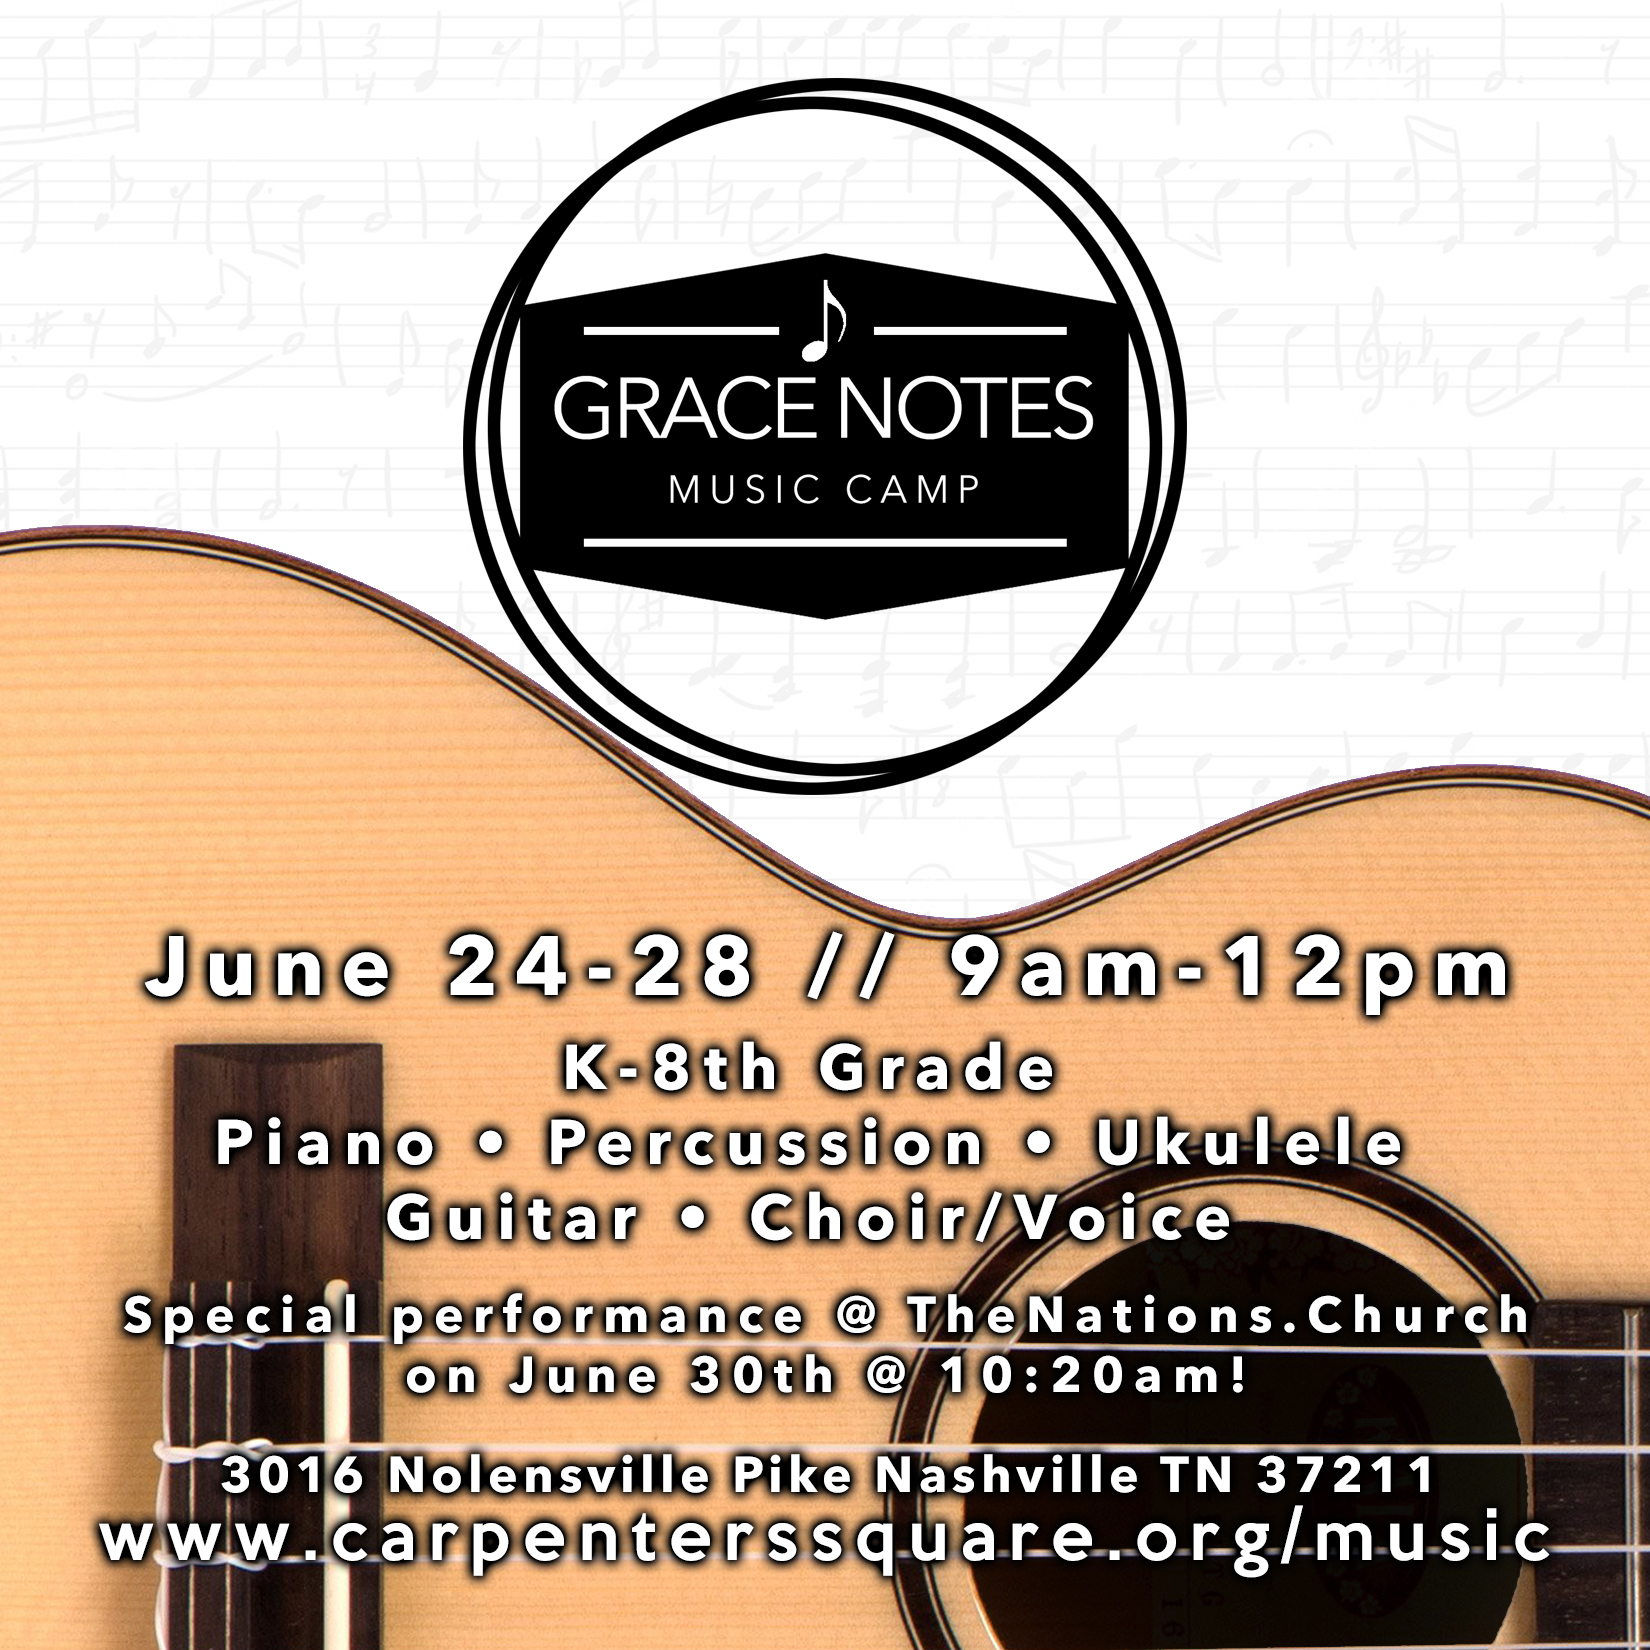 Grace Notes Music Camp - We are excited to announce the launch of our first music camp this summer at Carpenter's Square! Grace Notes is a free music camp that will be held on June 24-28 from 9am-12pm and will be led by amazing Nashville trio The Erabellas.Students K-8th gradePiano • Ukulele • Choir/Voice • Percussion • General Music Theory